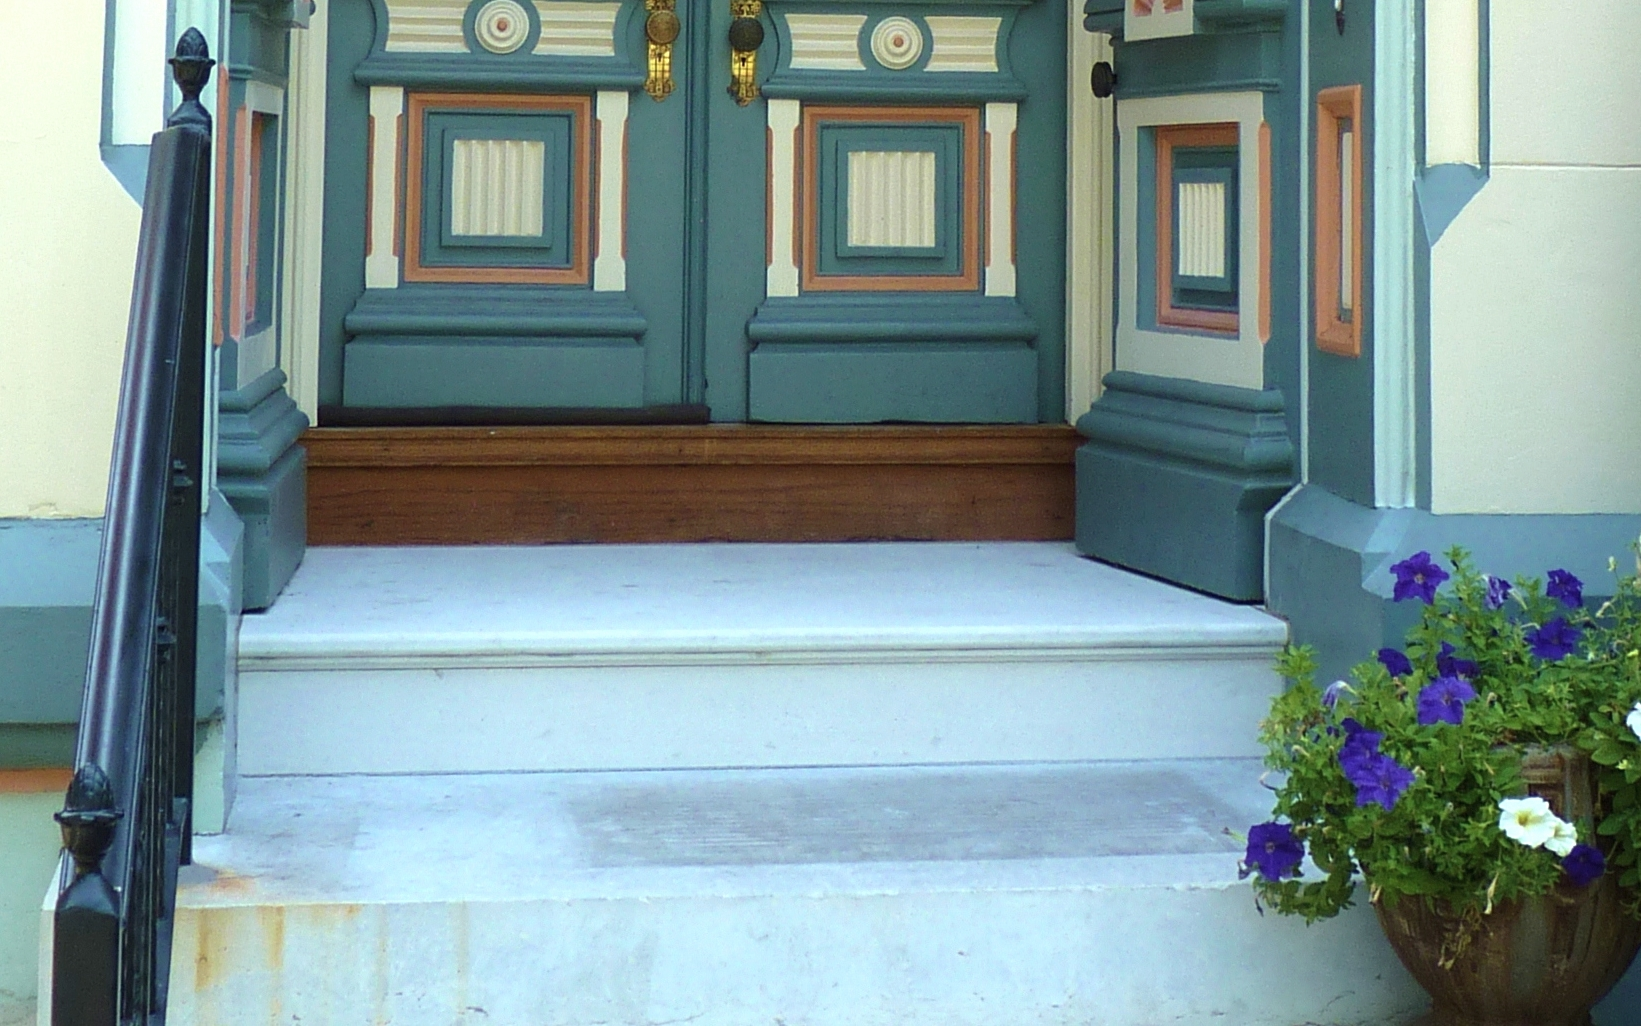 Marble Porch Repaired - Lafayette Square Neighborhood, Saint Louis, MO - Stone Works - Lee Lindsey